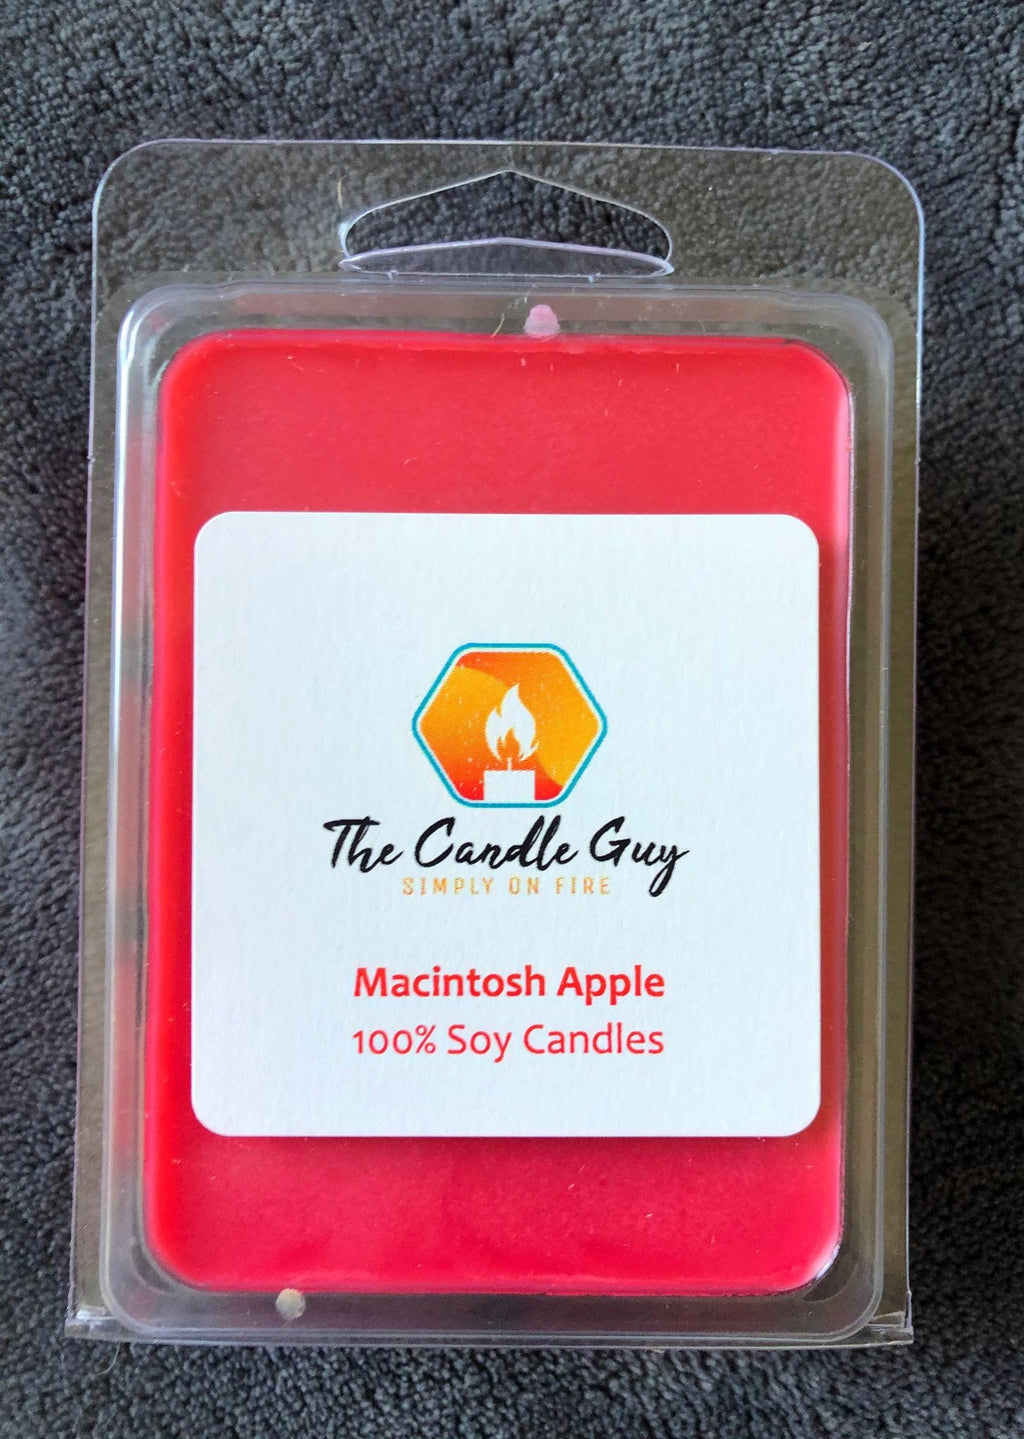 Macintosh Apple Wax Melt - The Candle Guy LLC